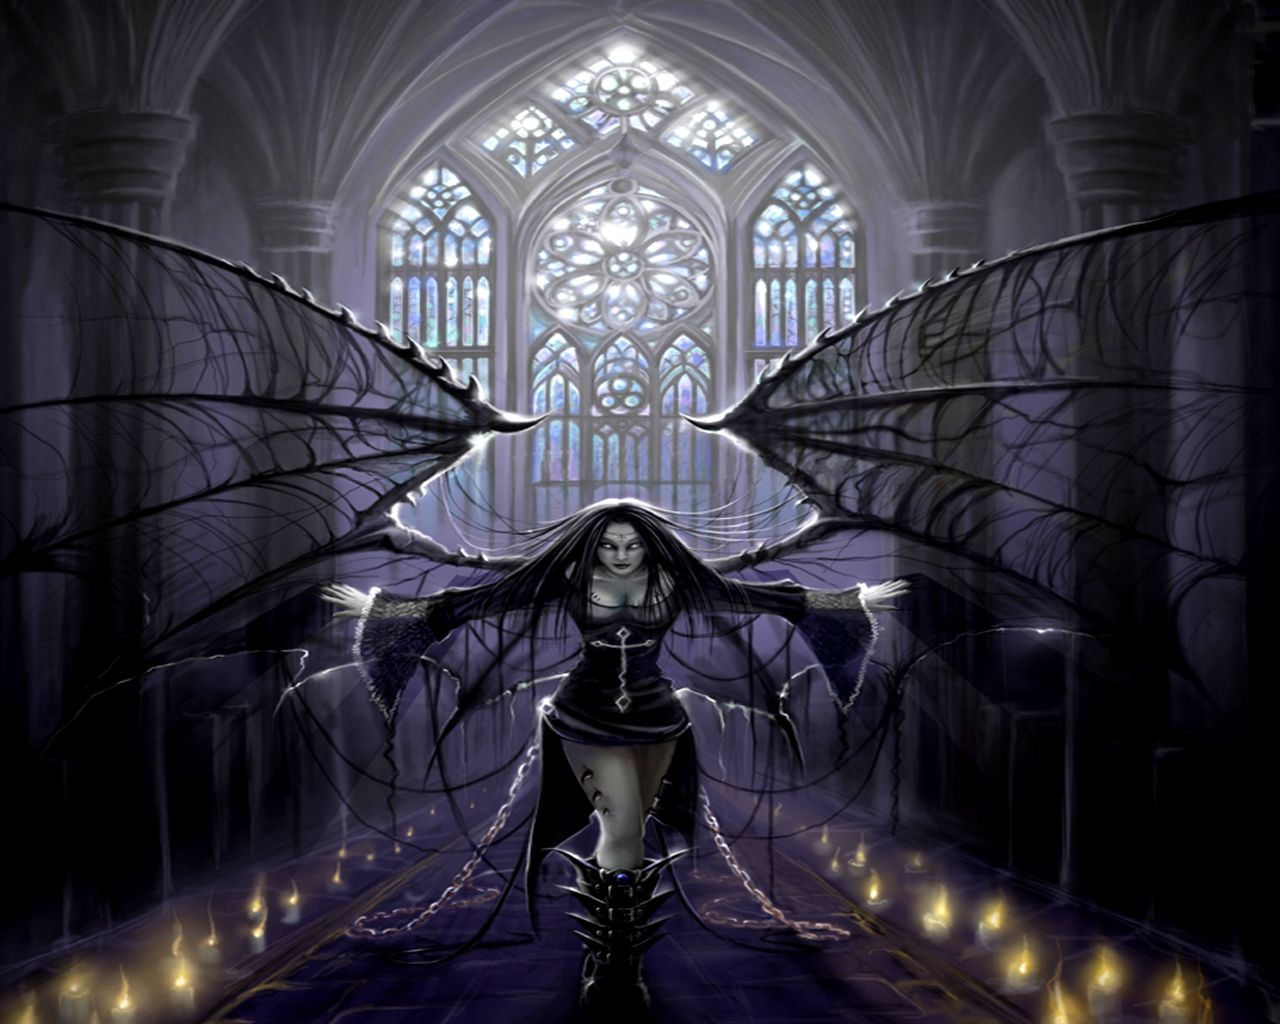 The wallflower anime goth girl gothic anime dark girl angel with chains from angels 1280x1024px